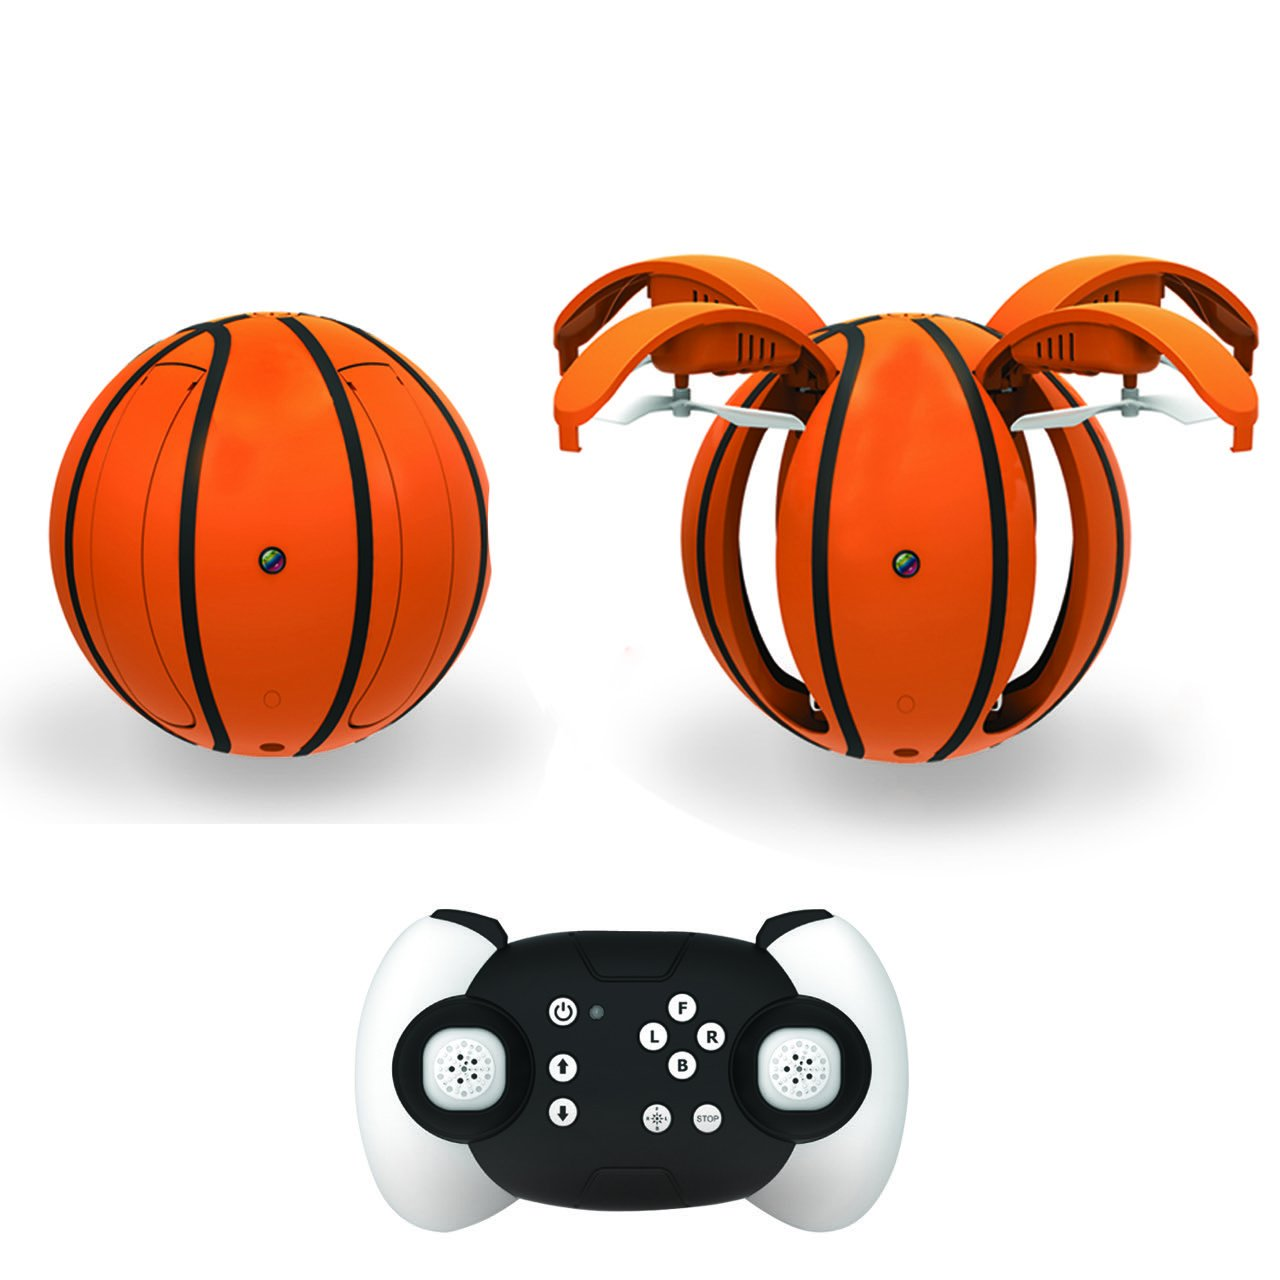 Zcadoo - Mini App-Controlled Folding Basketball Quadcopter RC Drone for Kids with HD Camera